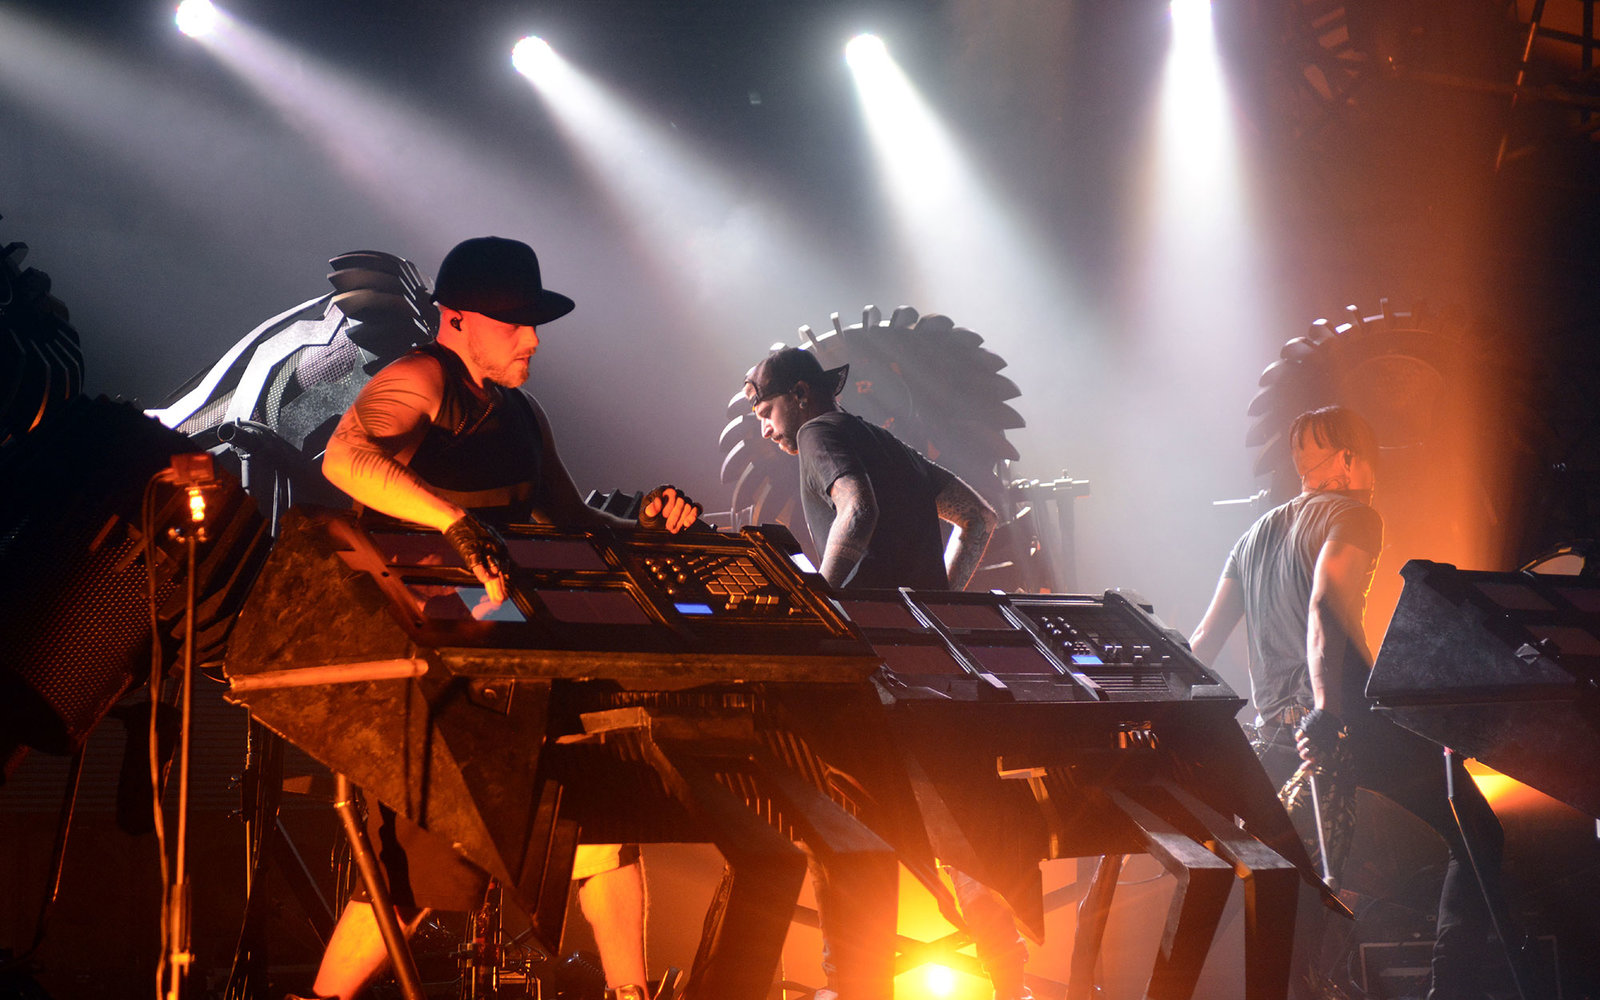 GEORGE, WA - MAY 25:  (L - R) Boreta, Ooah, and edIT of The Glitch Mob perform during the 2015 Sasquatch! Music Festival at The Gorge on May 25, 2015 in George, Washington.  (Photo by Tim Mosenfelder/Getty Images)